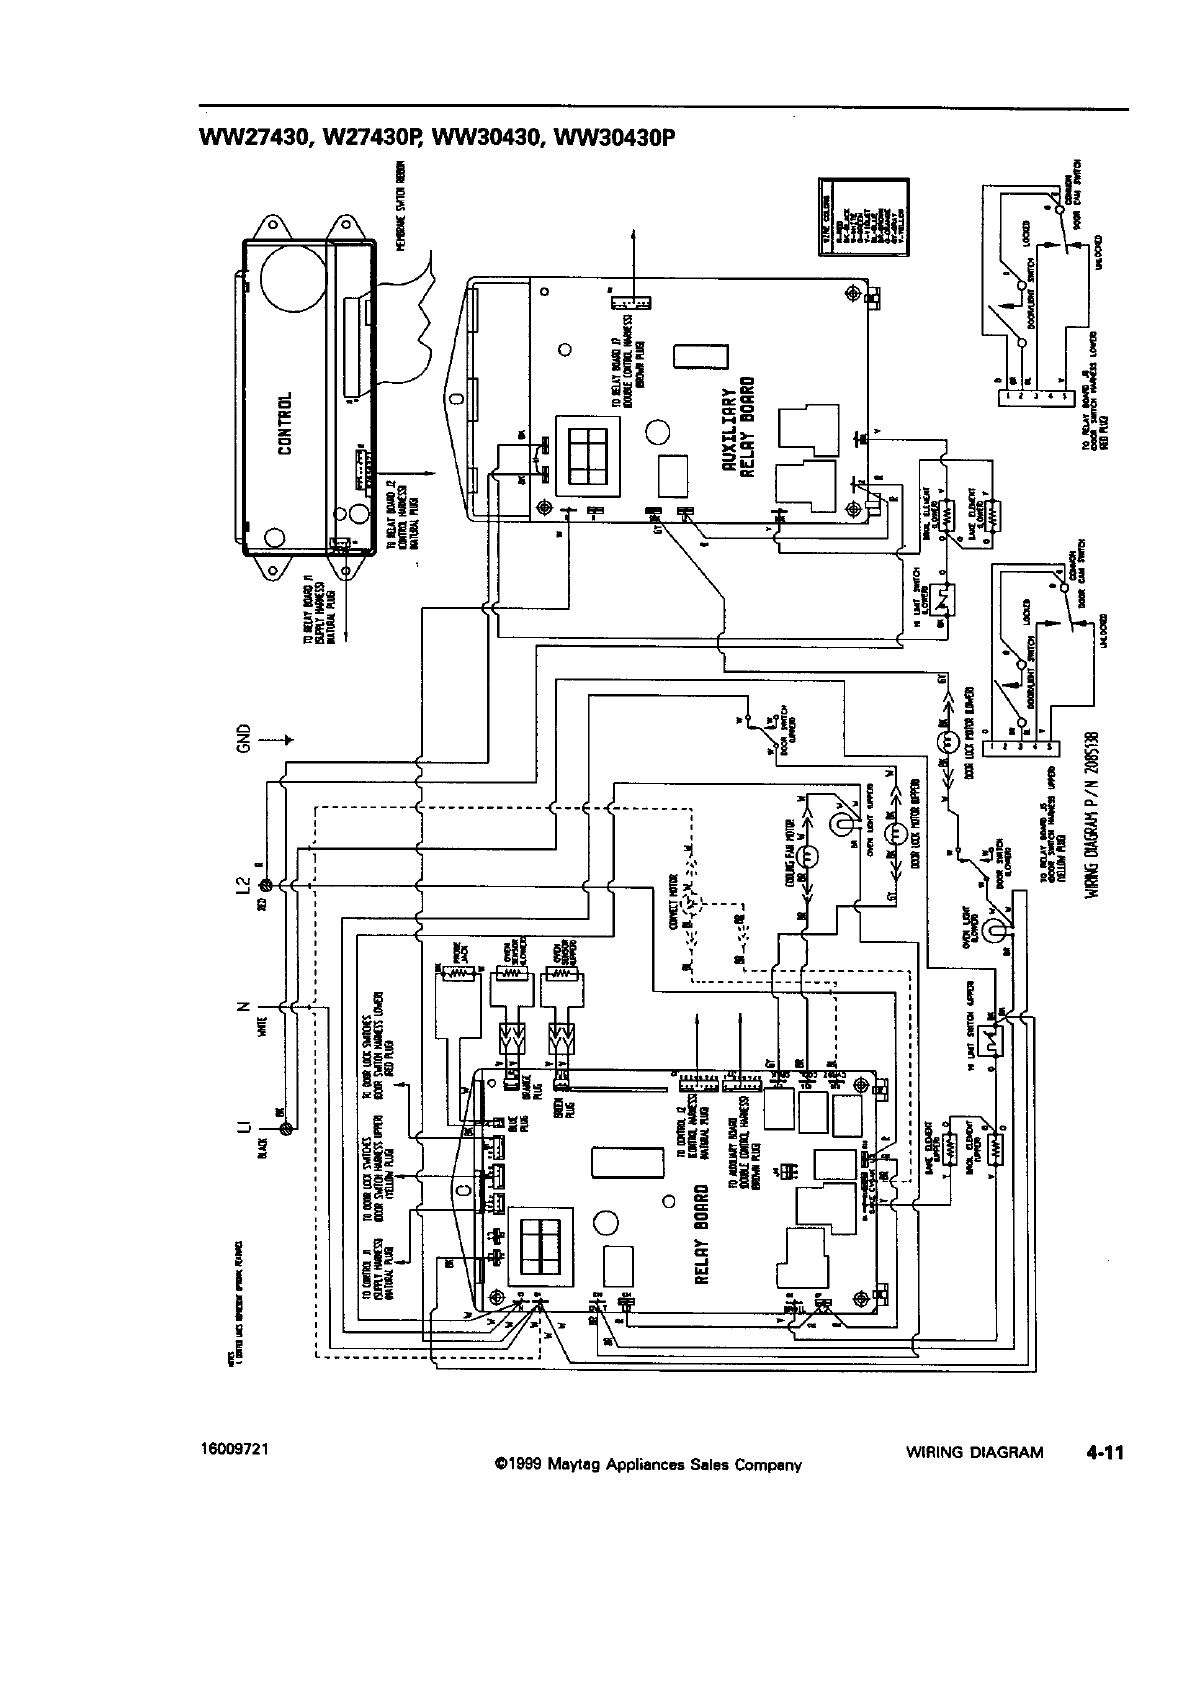 52b2f415 78fa 4259 88c0 be210120d02a bg2b page 43 of jenn air oven ww30430p user guide manualsonline com Basic Electrical Wiring Diagrams at virtualis.co